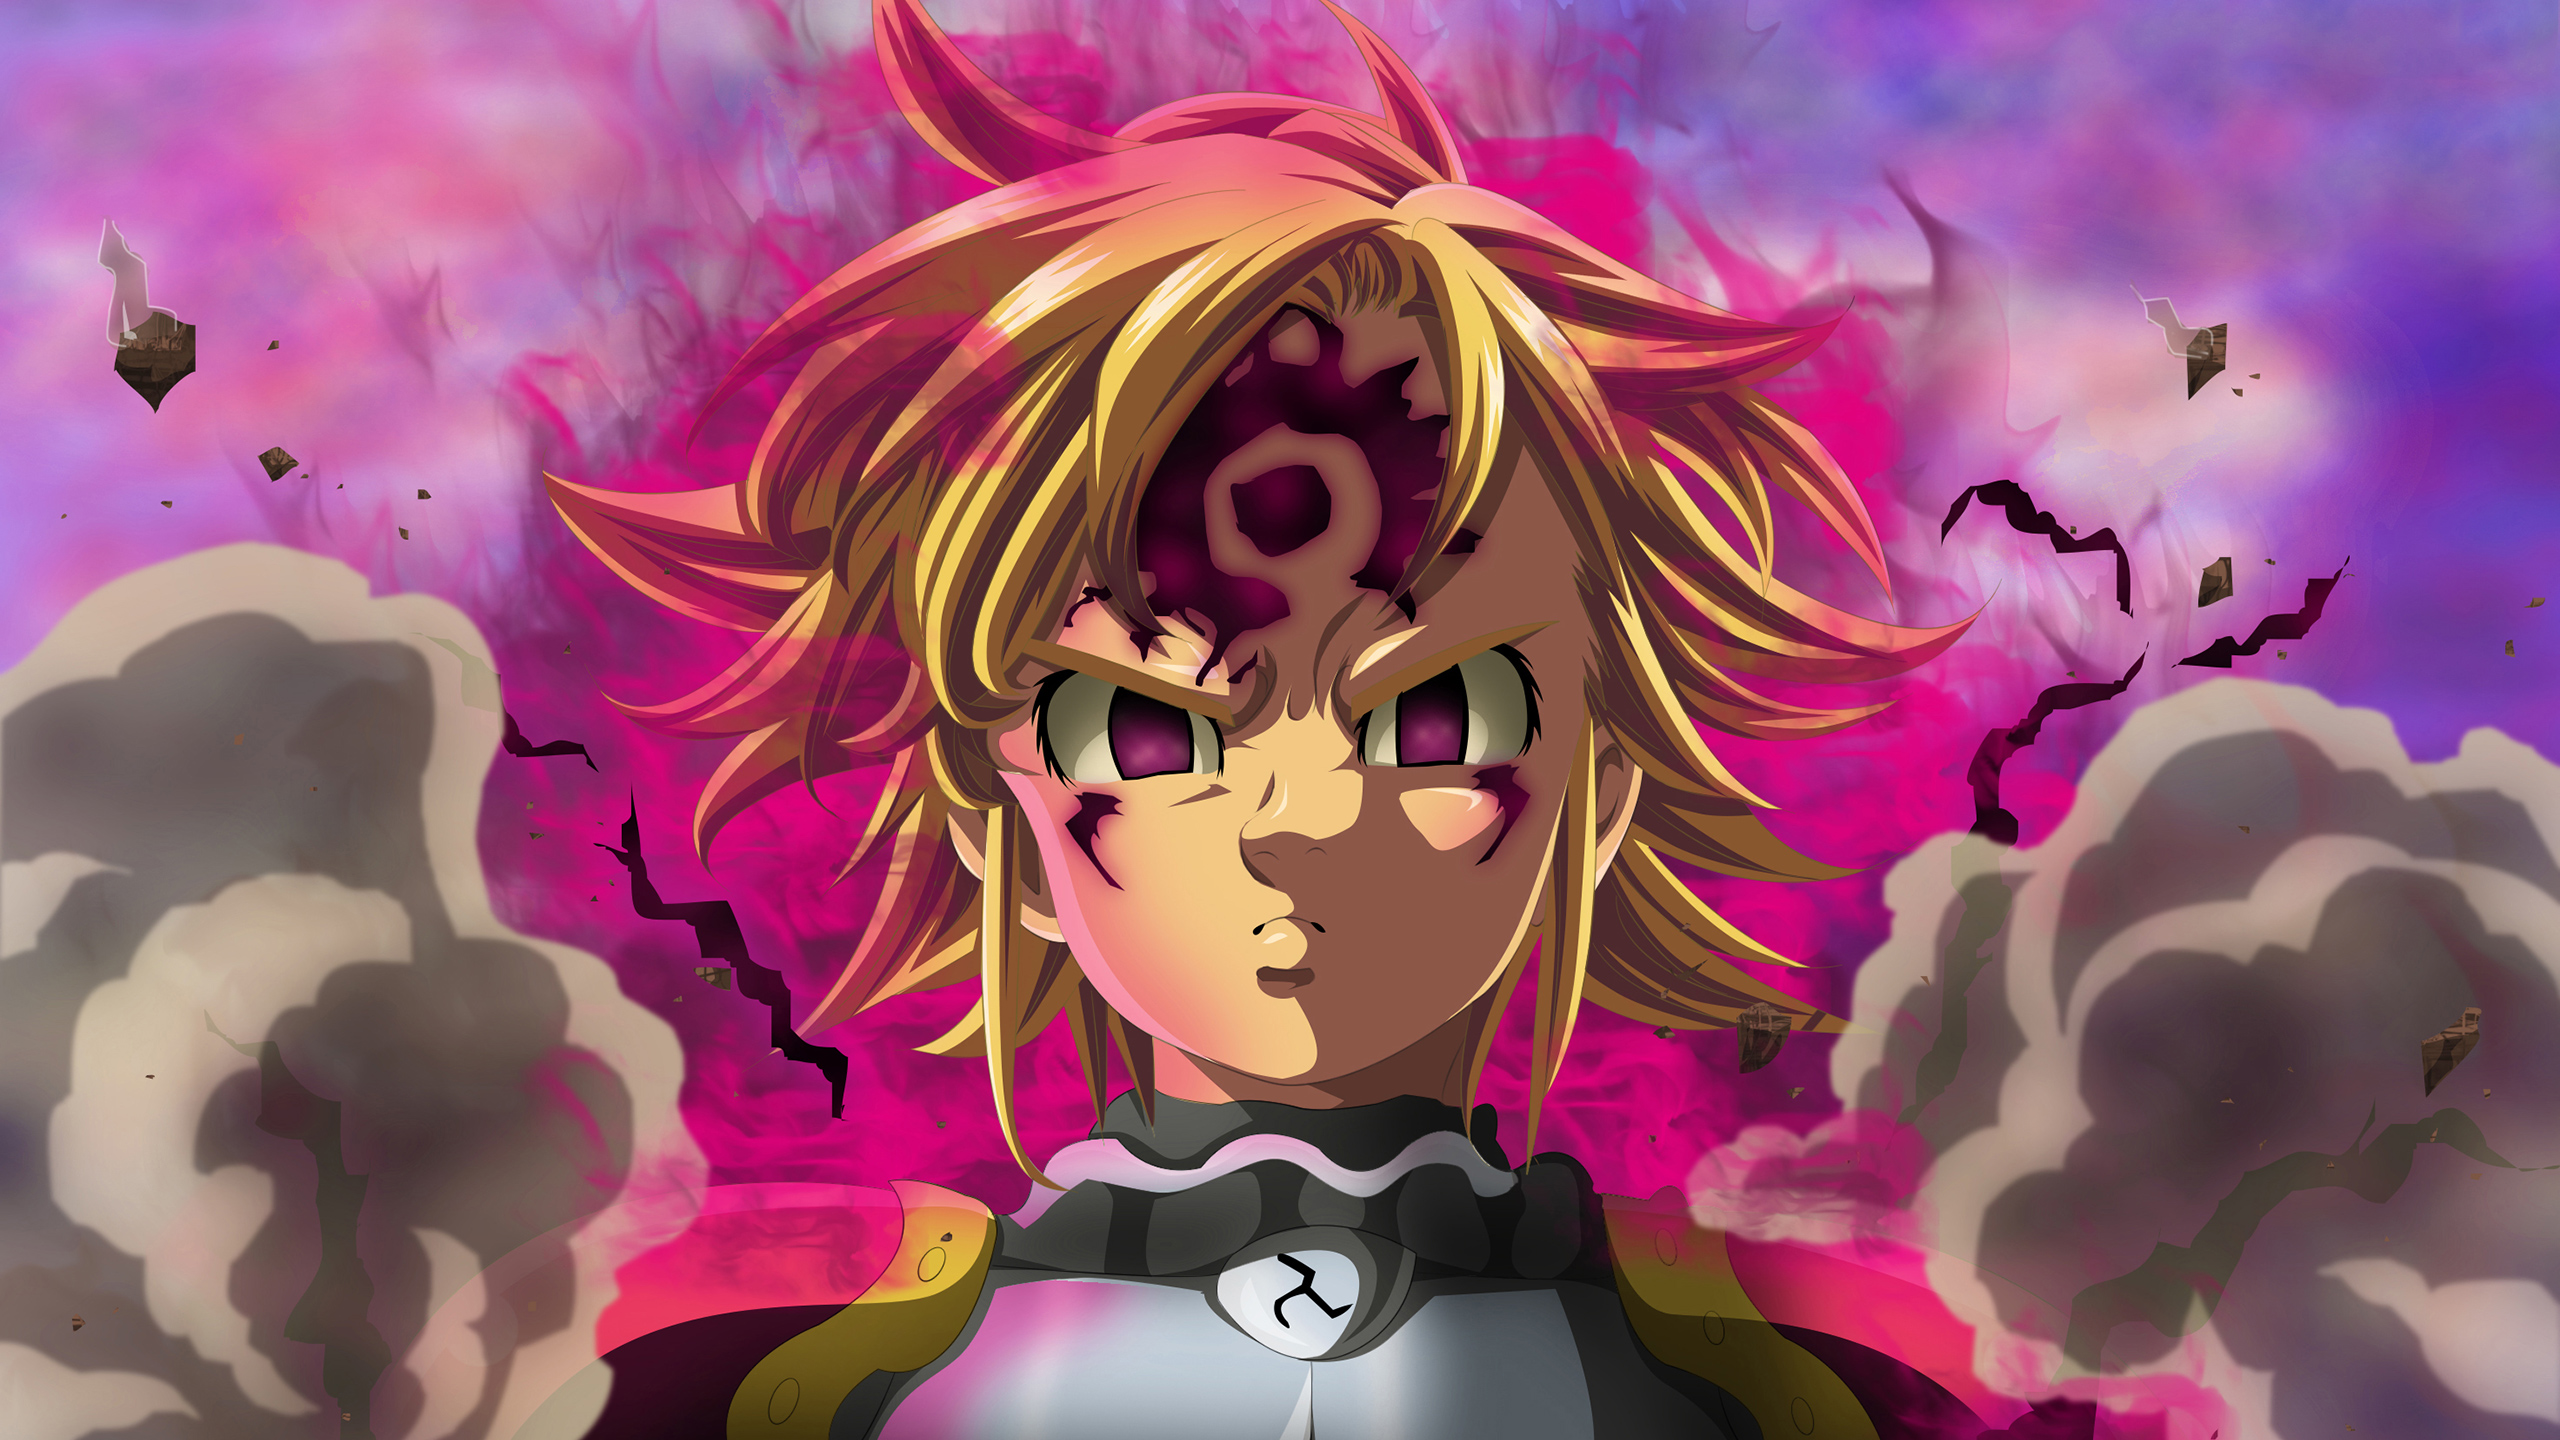 Meliodas The Seven Deadly Sins